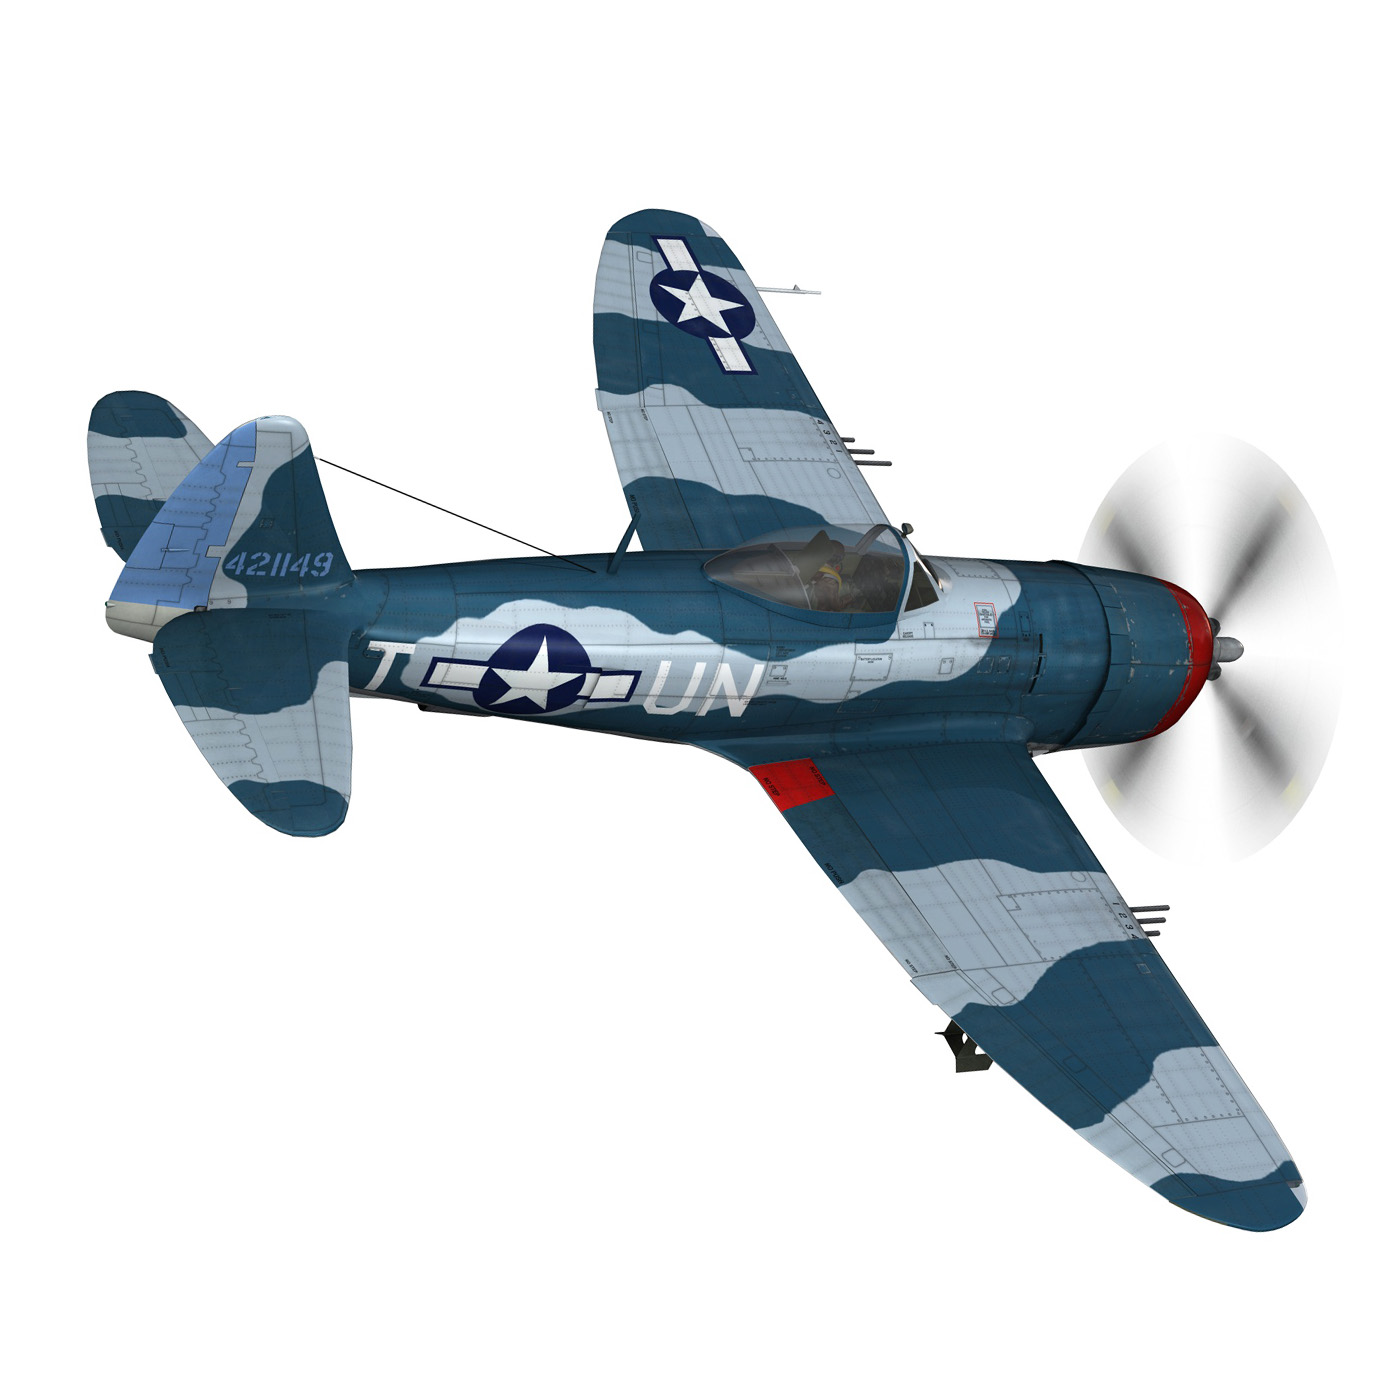 republic p-47 thunderbolt – ole miss lib 3d model fbx c4d lwo obj 274278